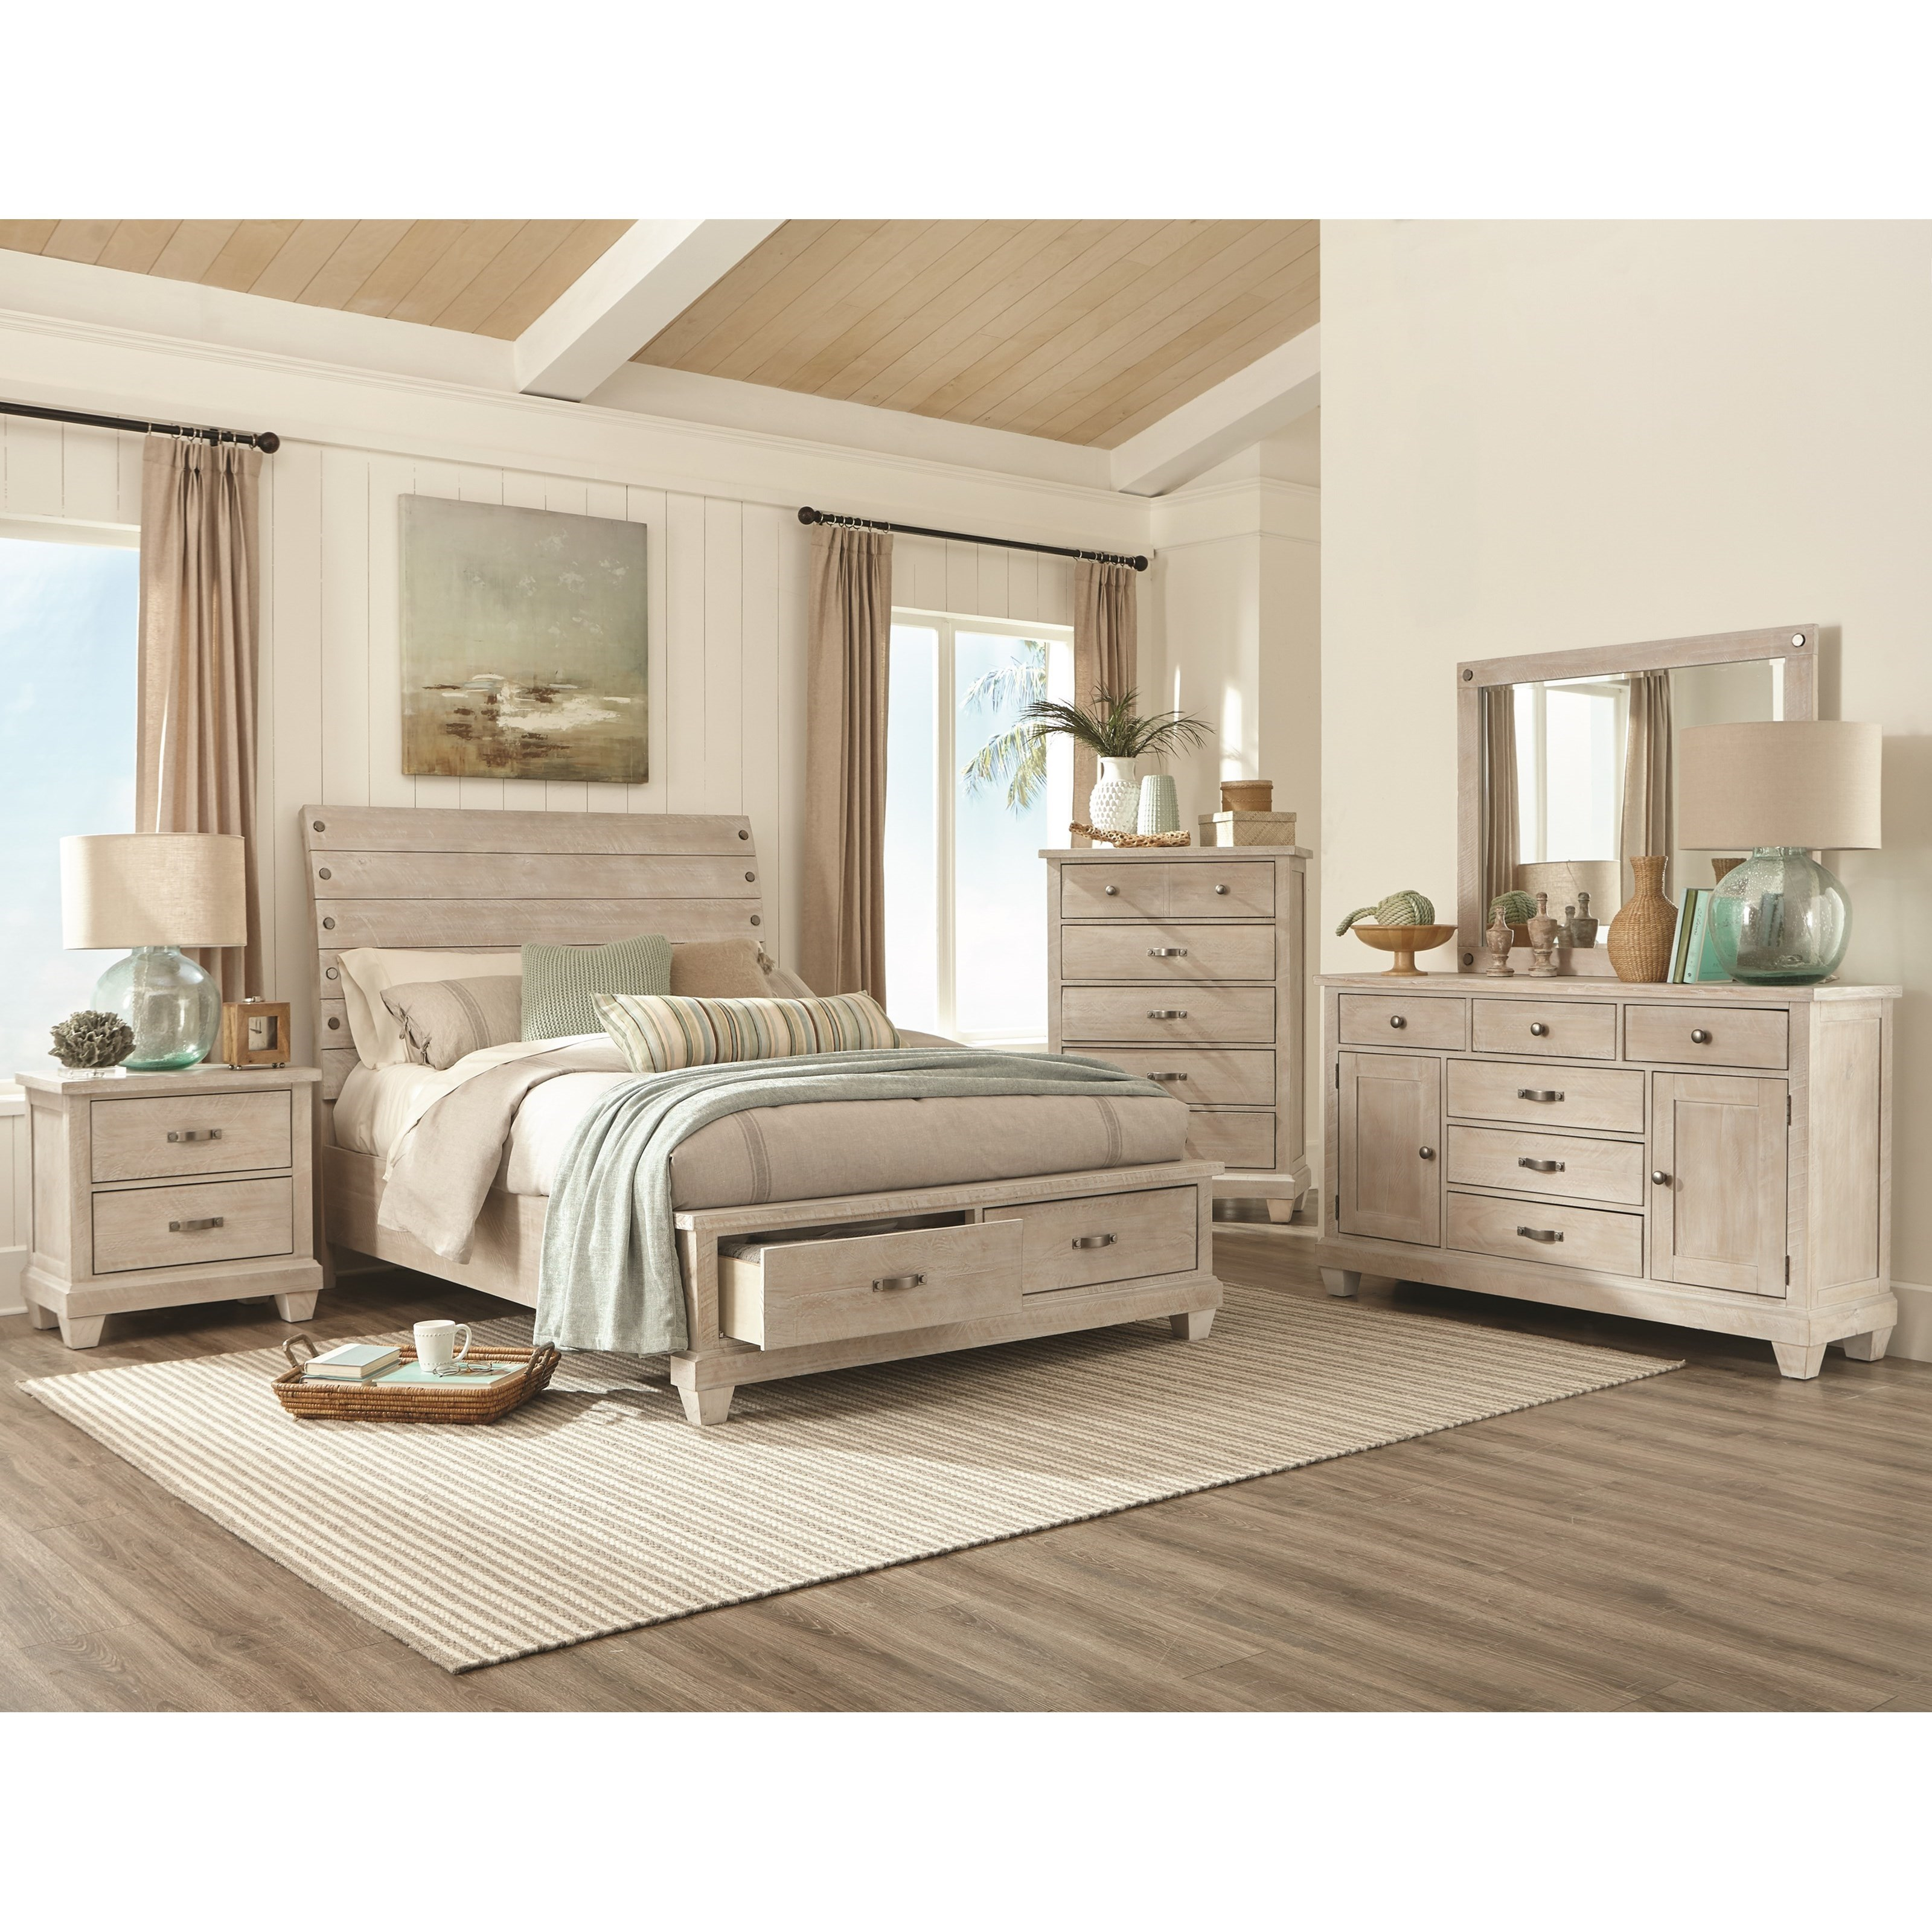 C7131W Queen Bedroom Group - 0 by Lifestyle at Beck's Furniture